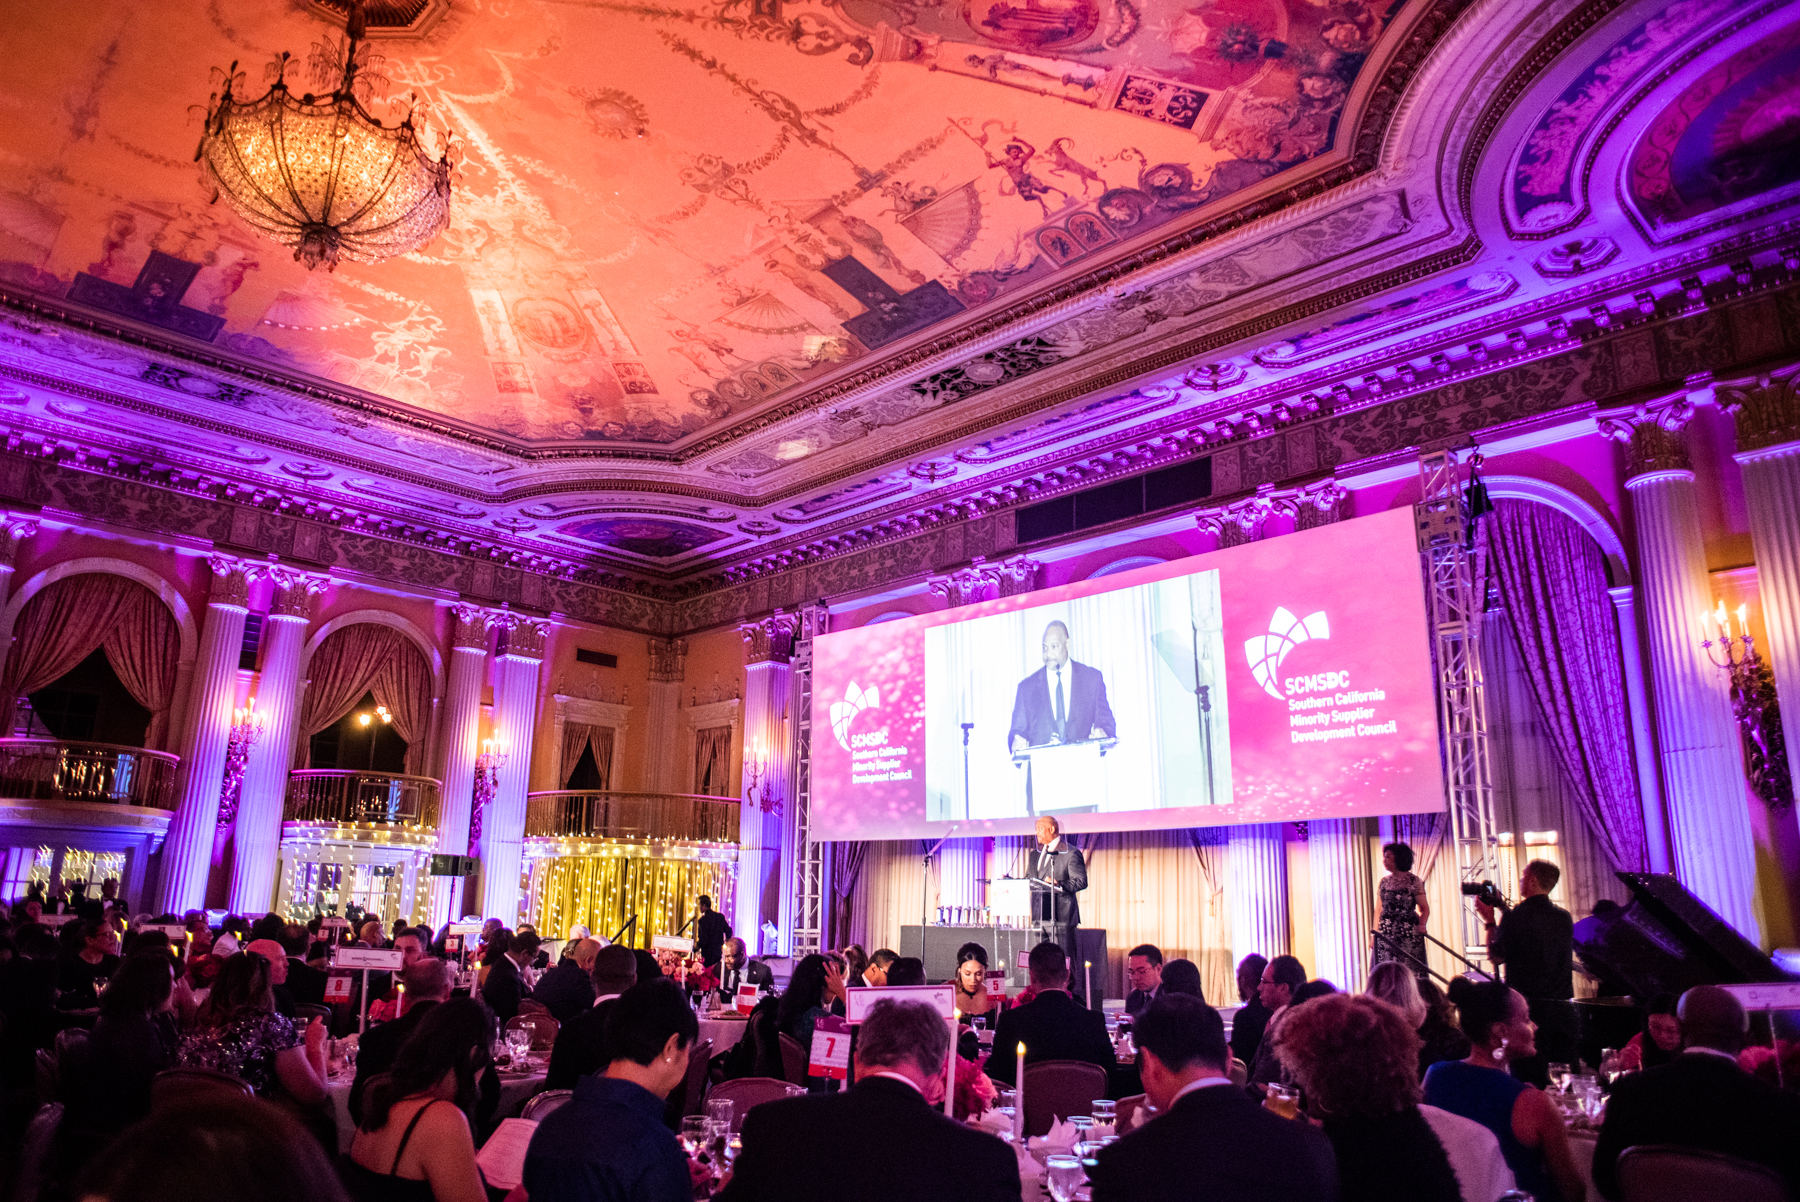 SCMSDC Night at the Opera Awards_Biltmore Hotel_Nov 14 2019_Annie Lesser_Web Res-8998